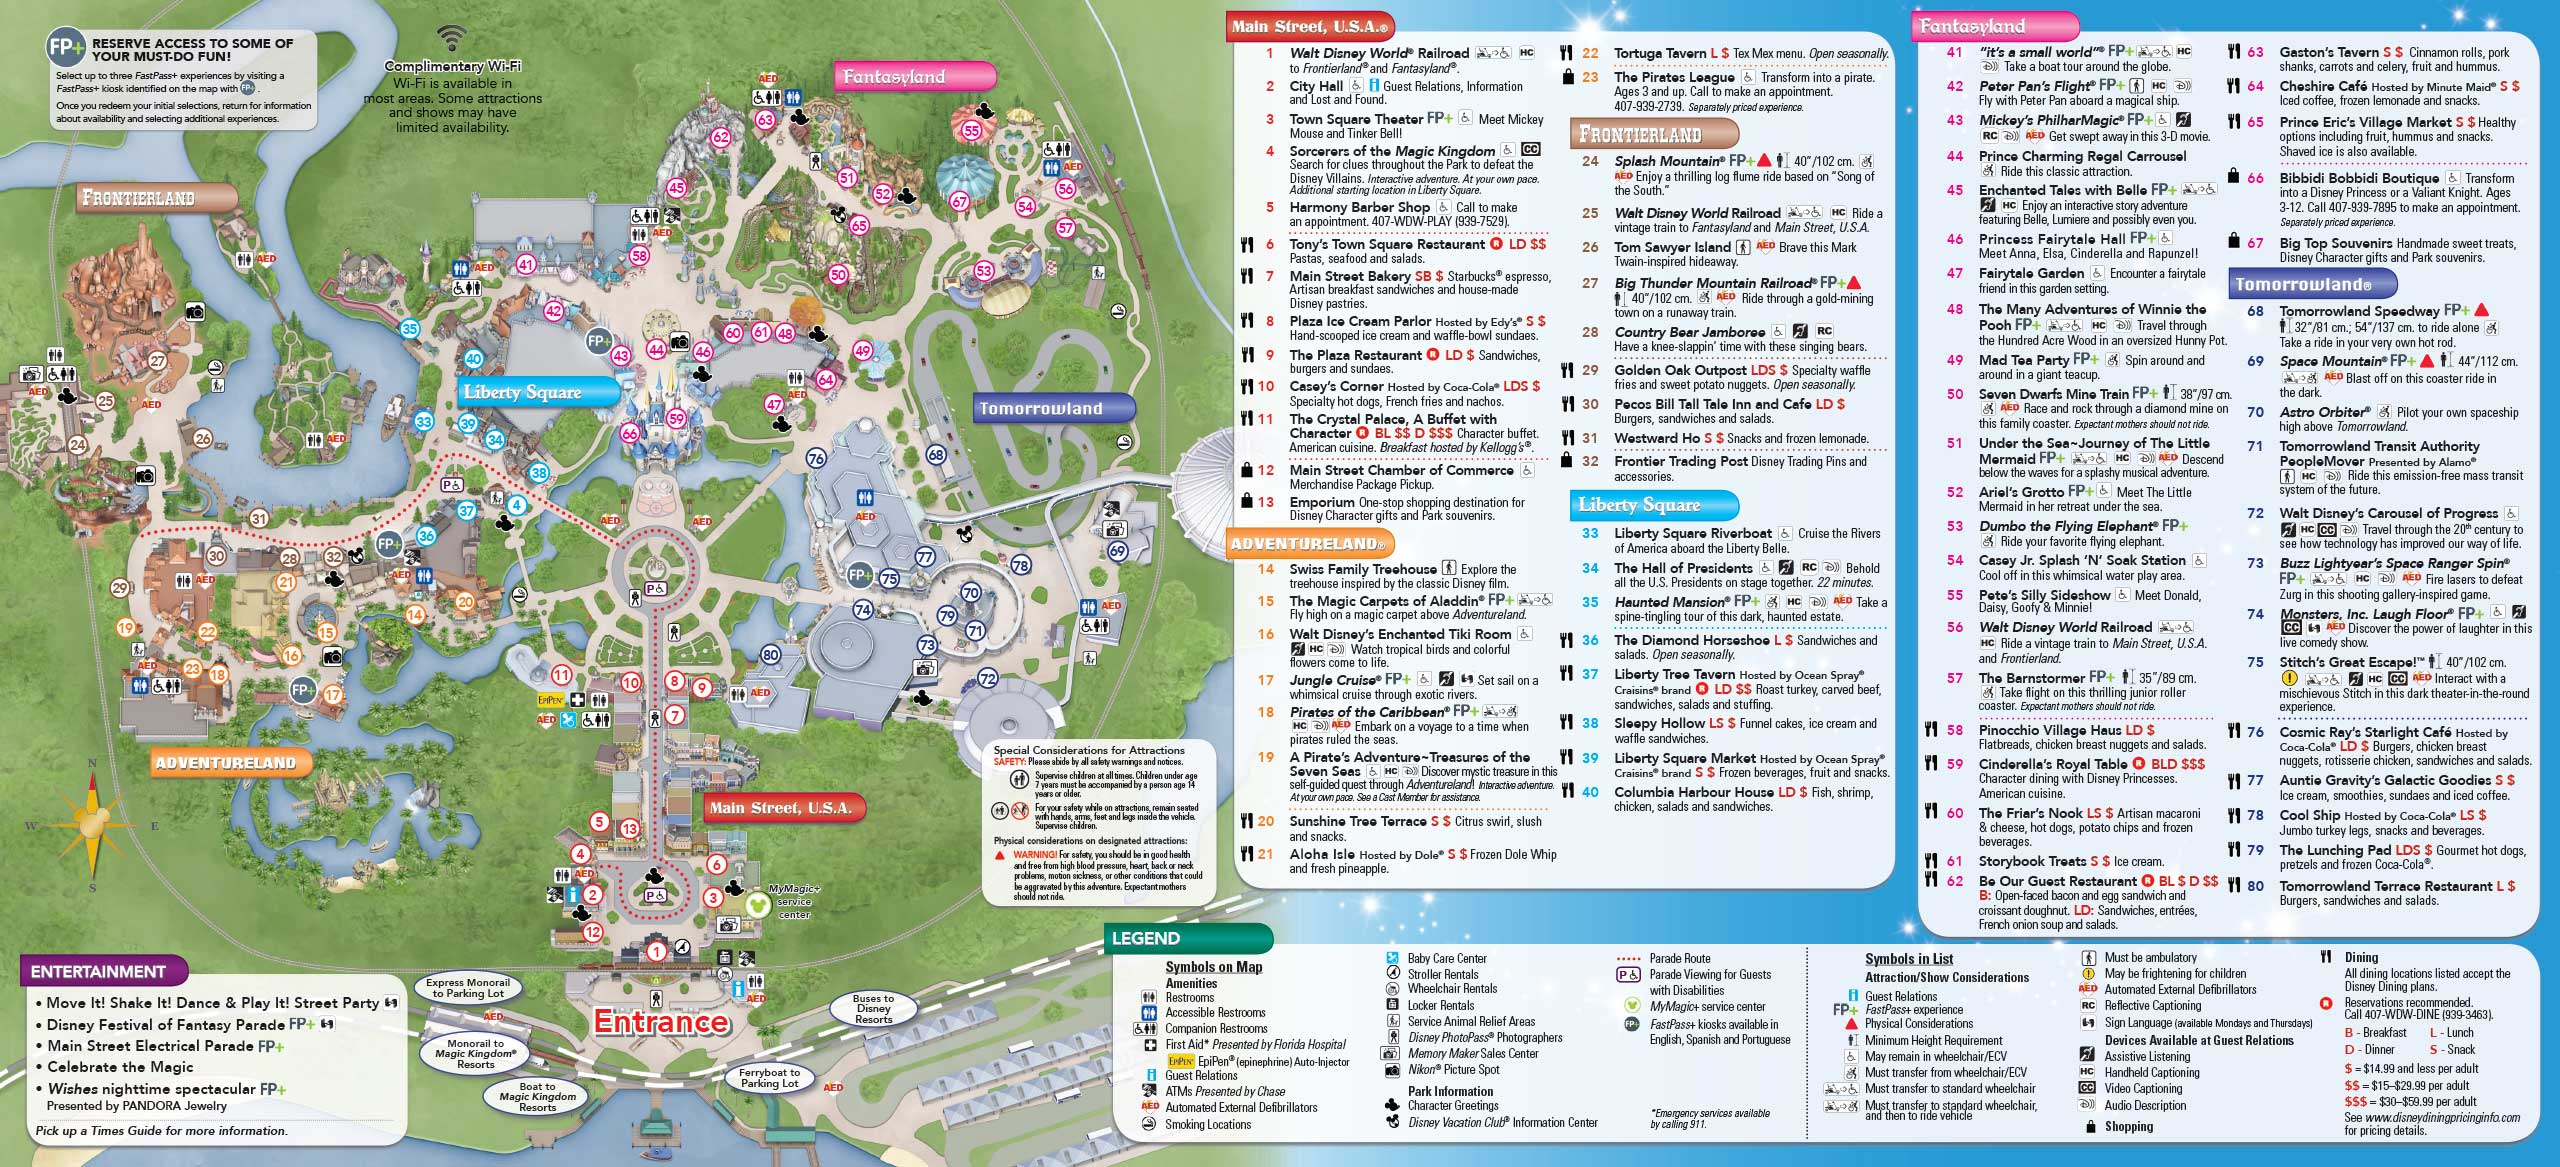 May 2015 walt disney world resort park maps photo 8 of 14 may 2015 walt disney world resort park maps gumiabroncs Choice Image